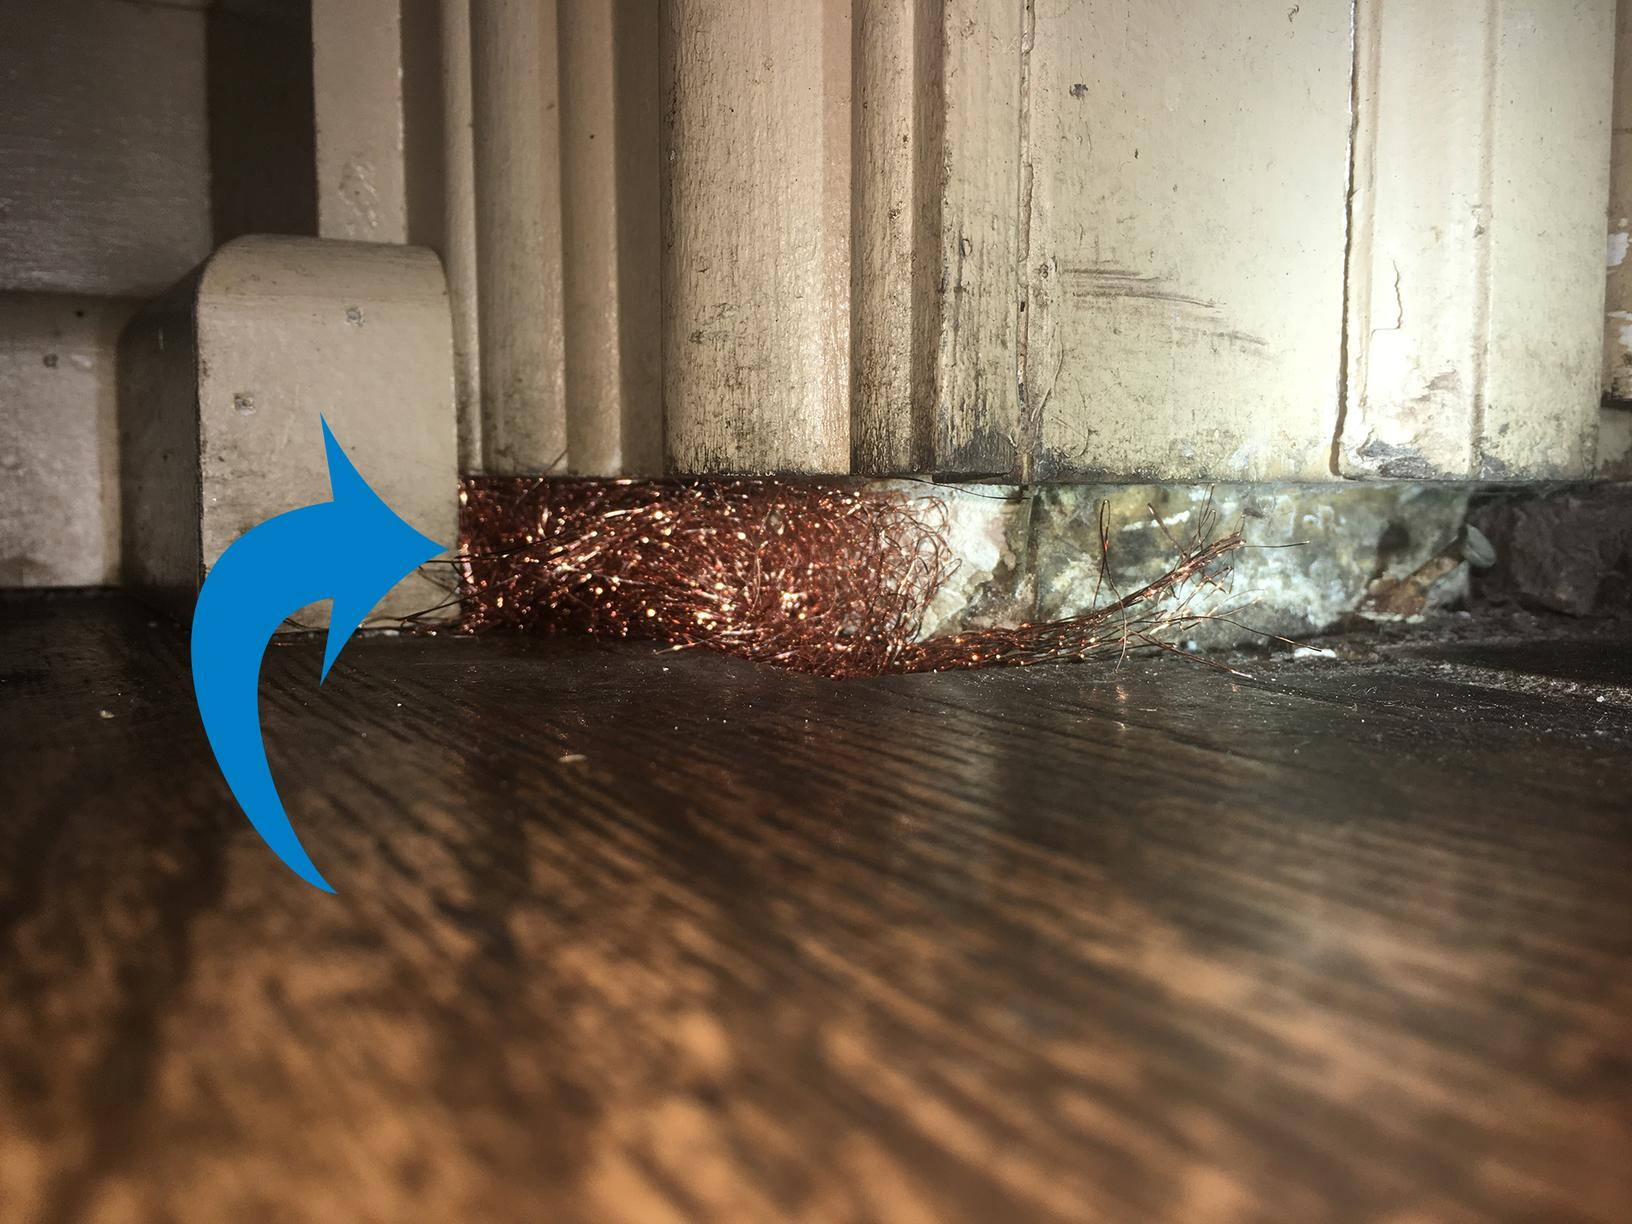 Mice find easy entry into Keyport commercial restaurant - After Photo